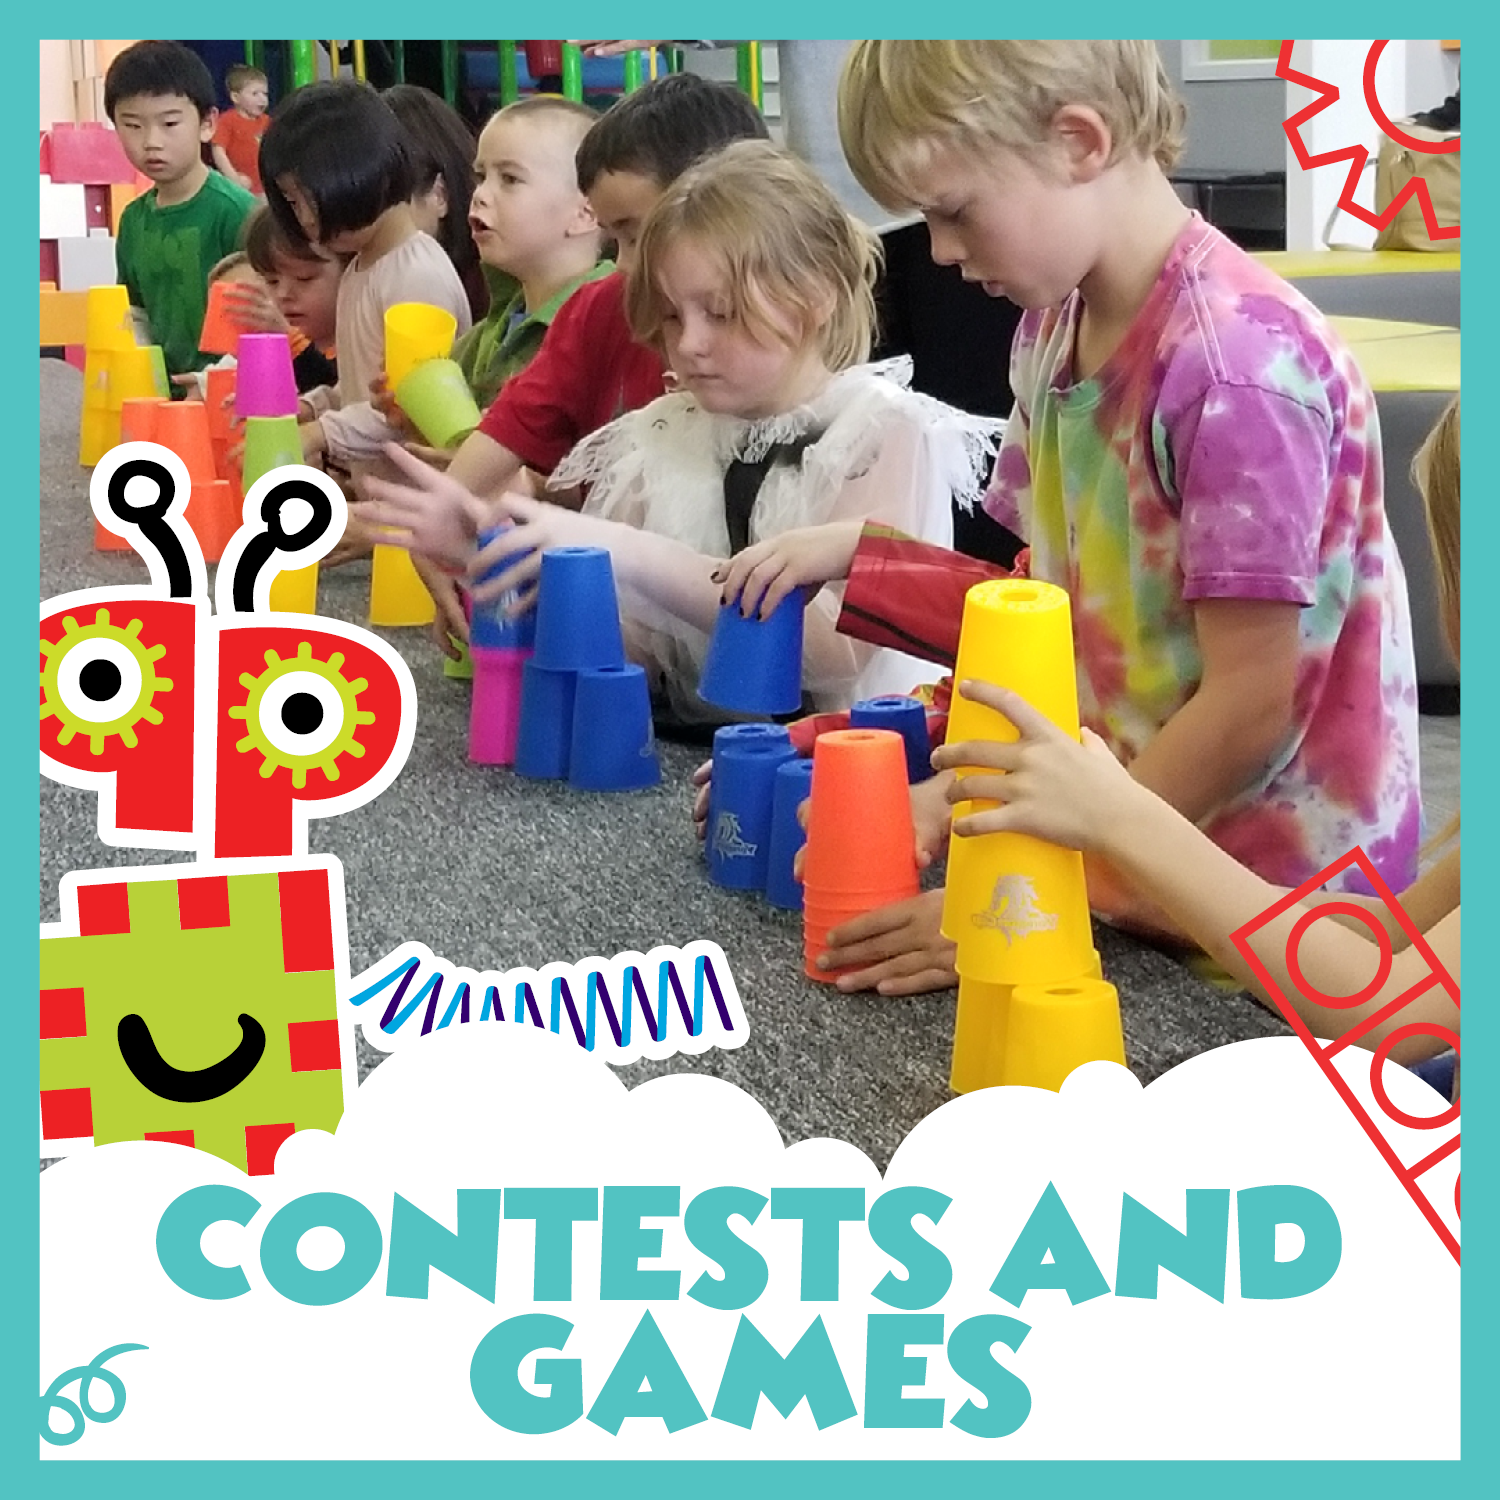 Contests and Games